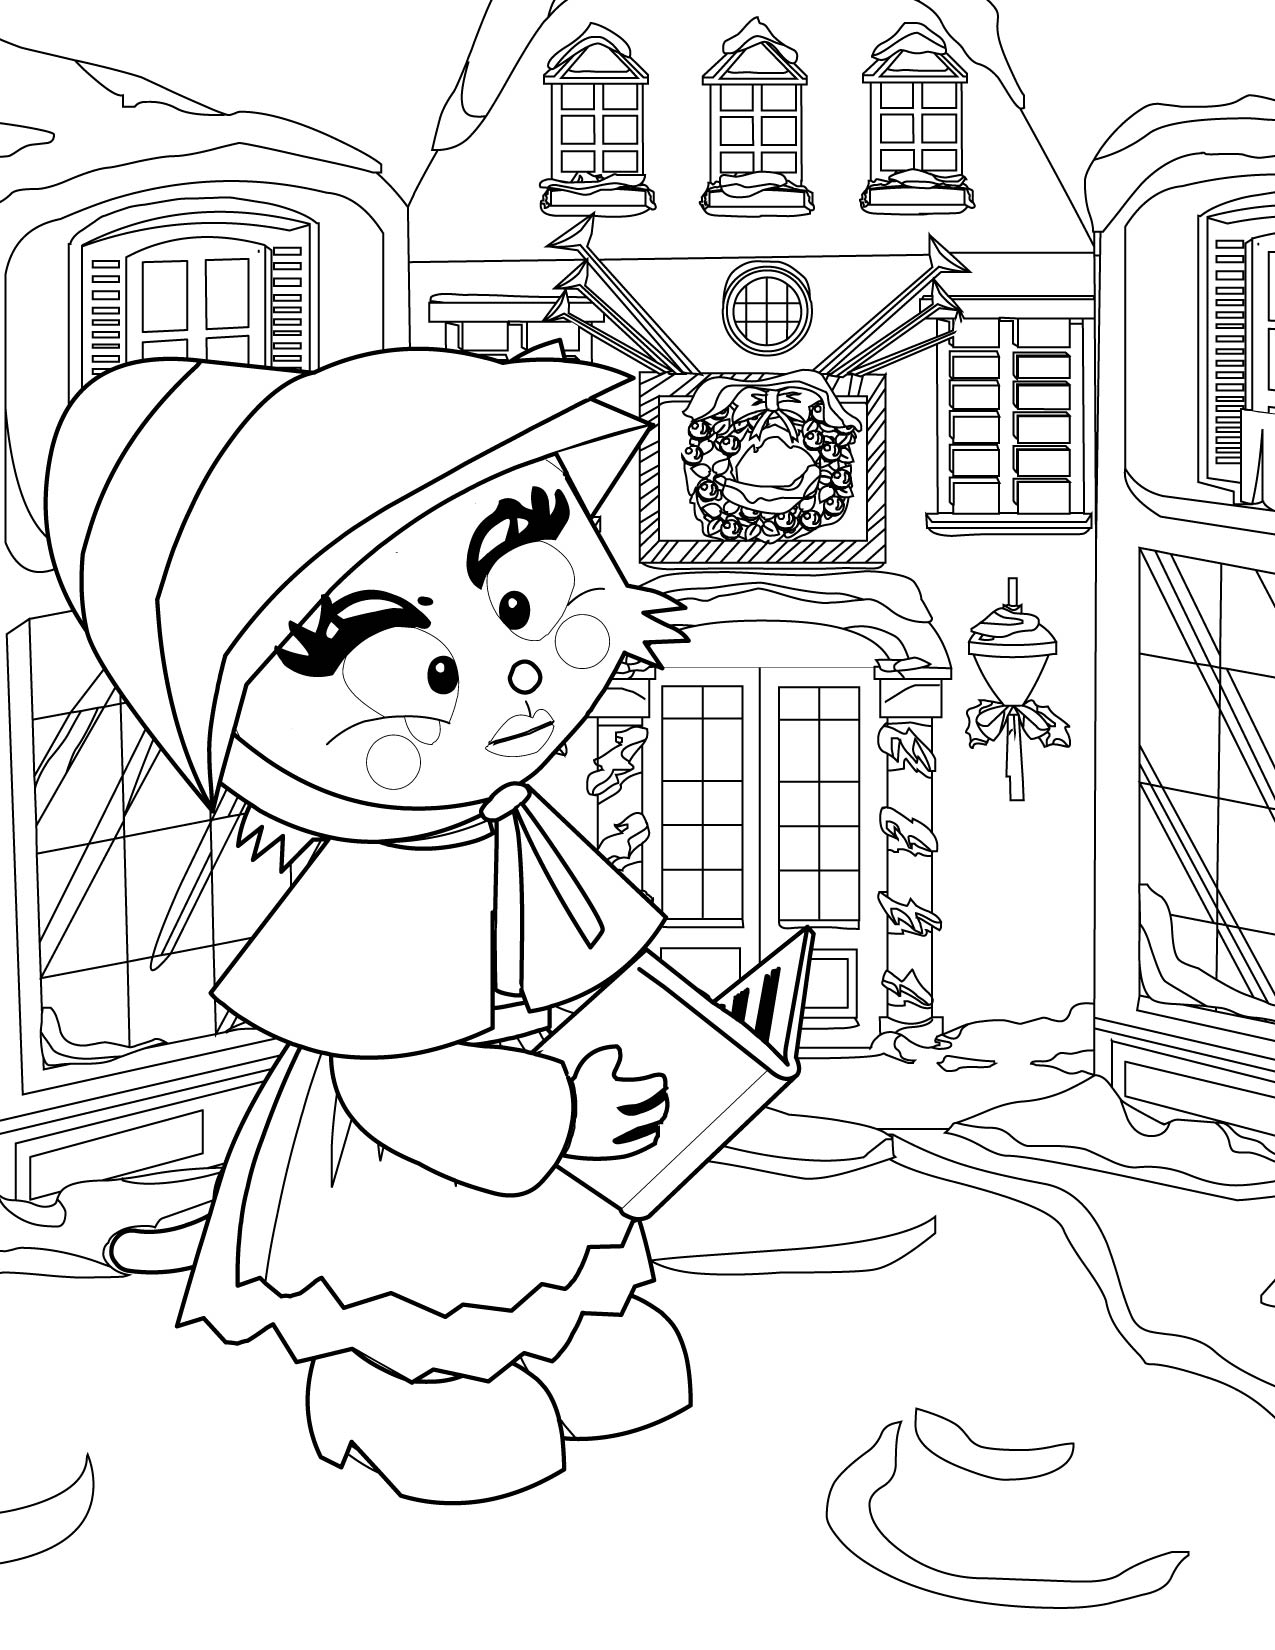 Victoria coloring dresses victorian clothes colouring pages page 2 - Victorian Christmas Free Colouring Pages